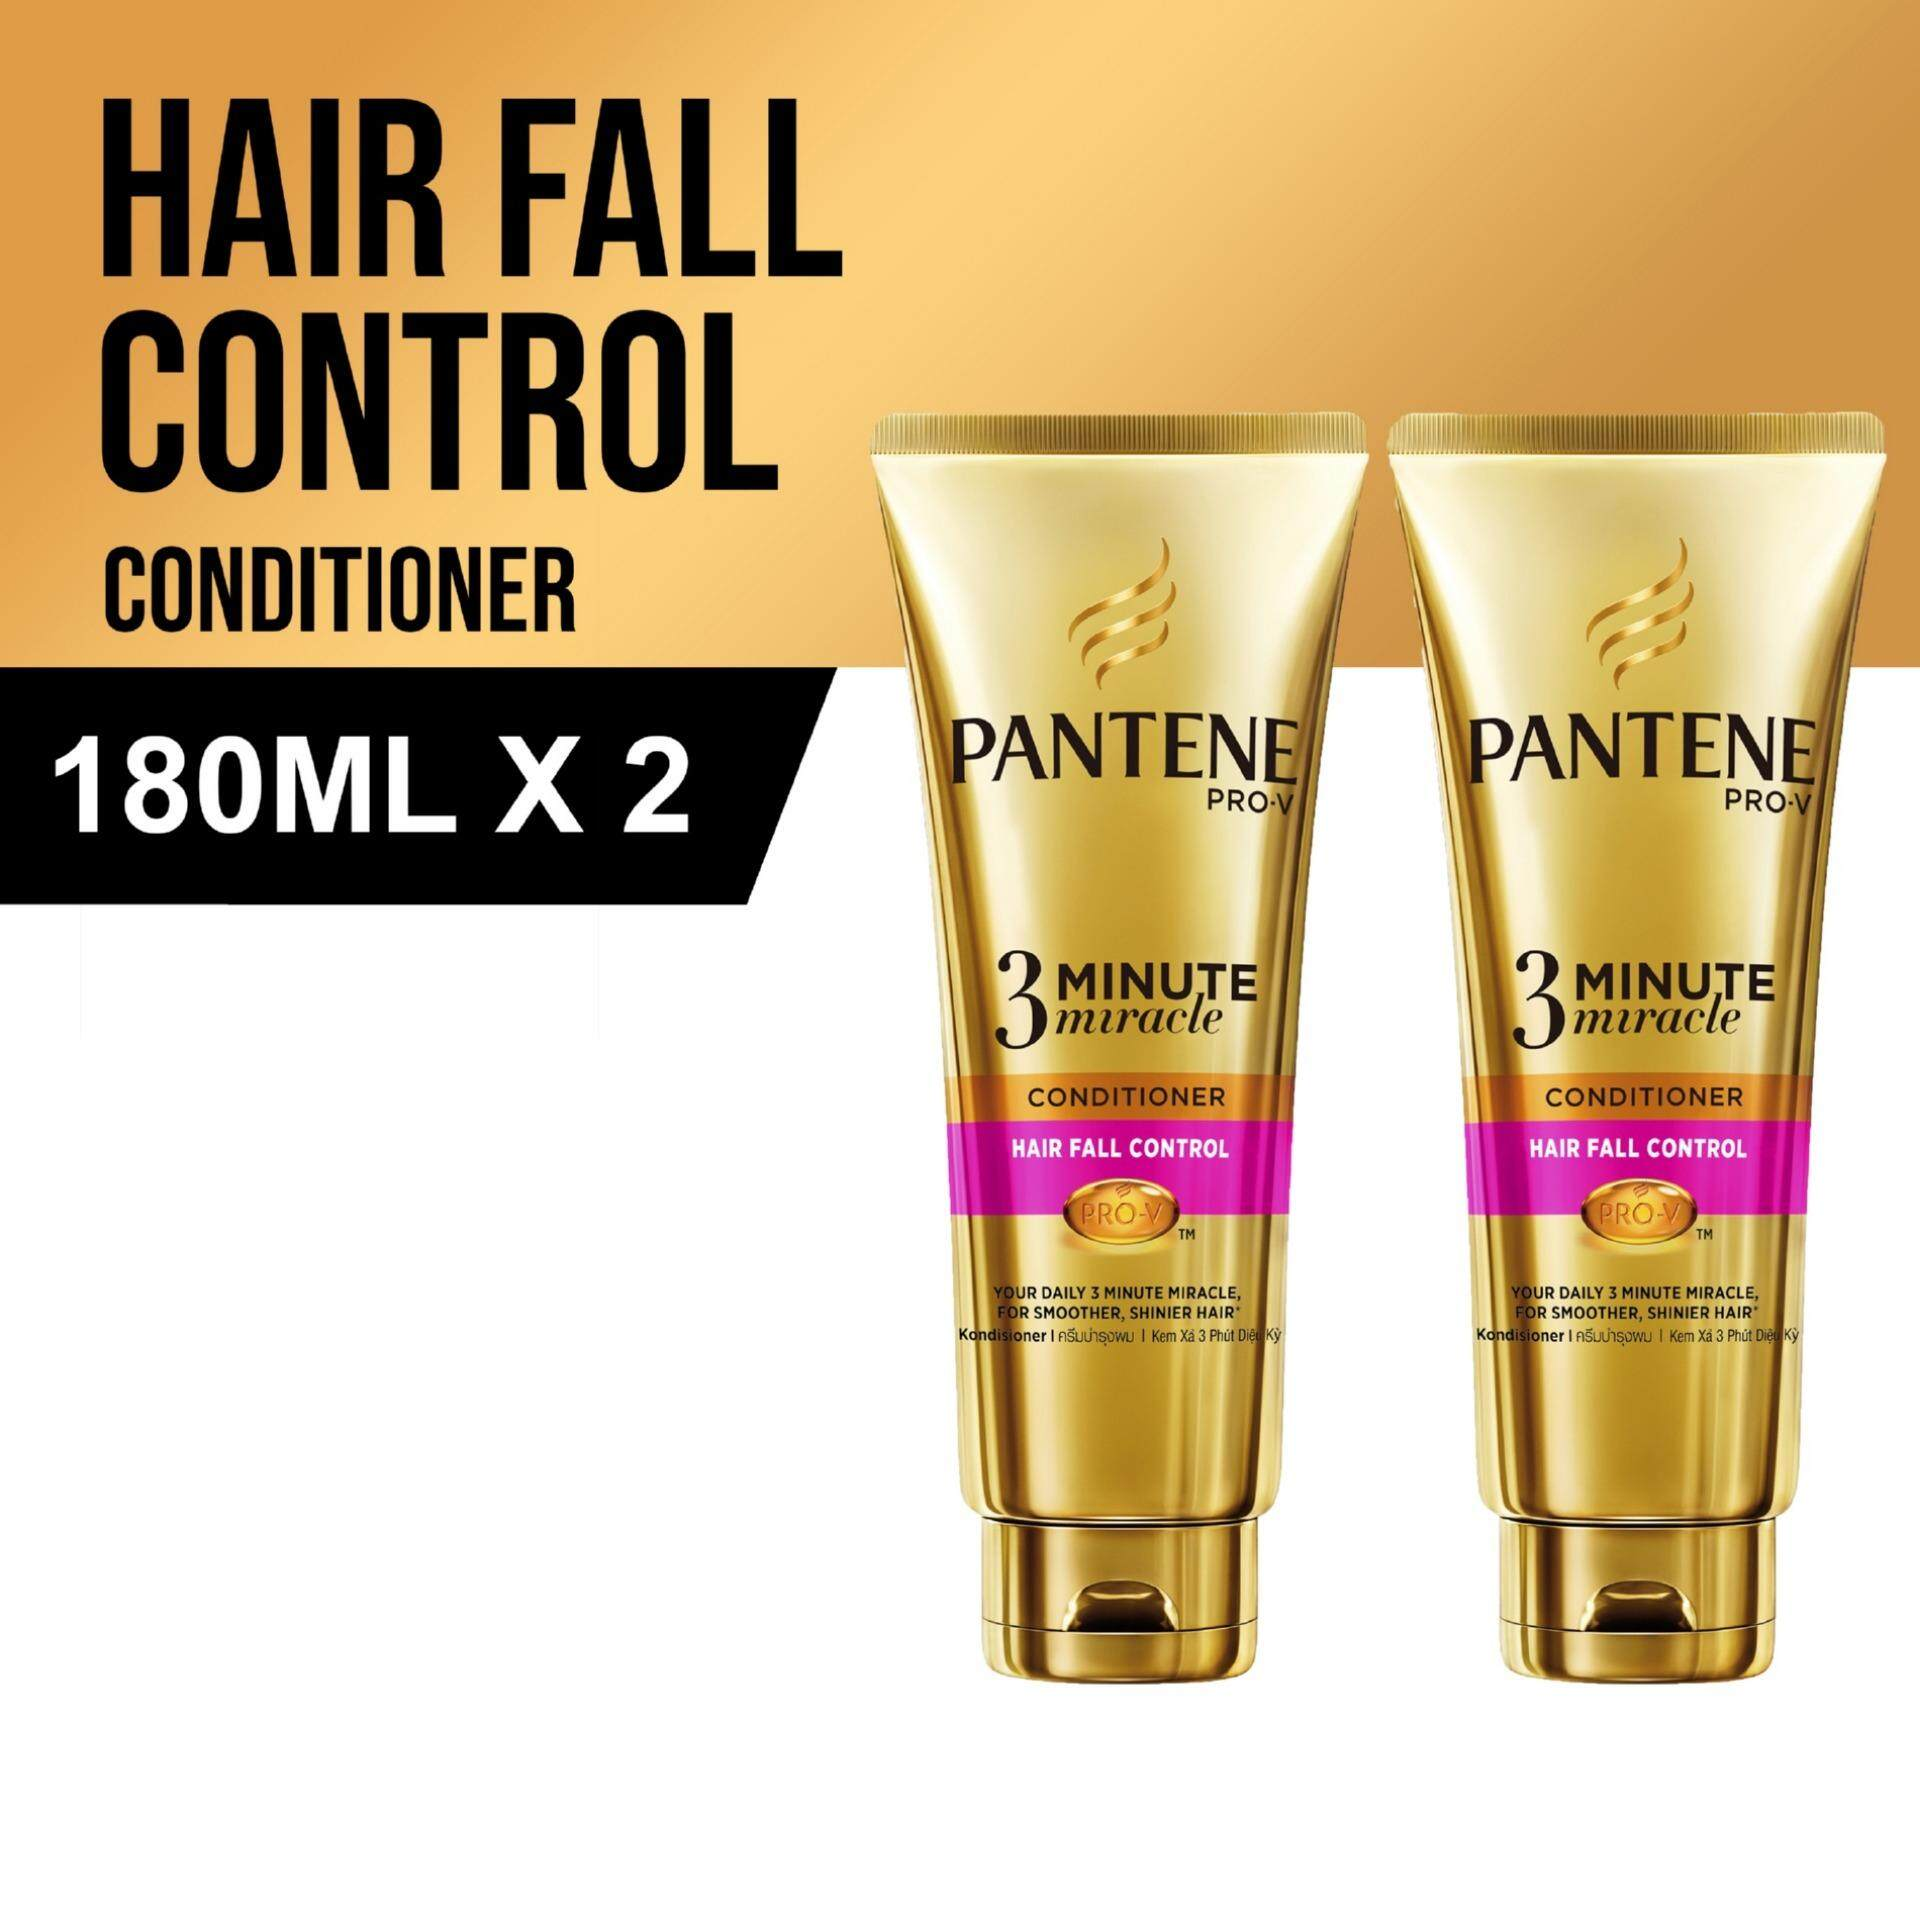 Pantene Pro-V 3 Minute Miracle Conditioner Hair Fall Control 180ml [Bundle of 2]